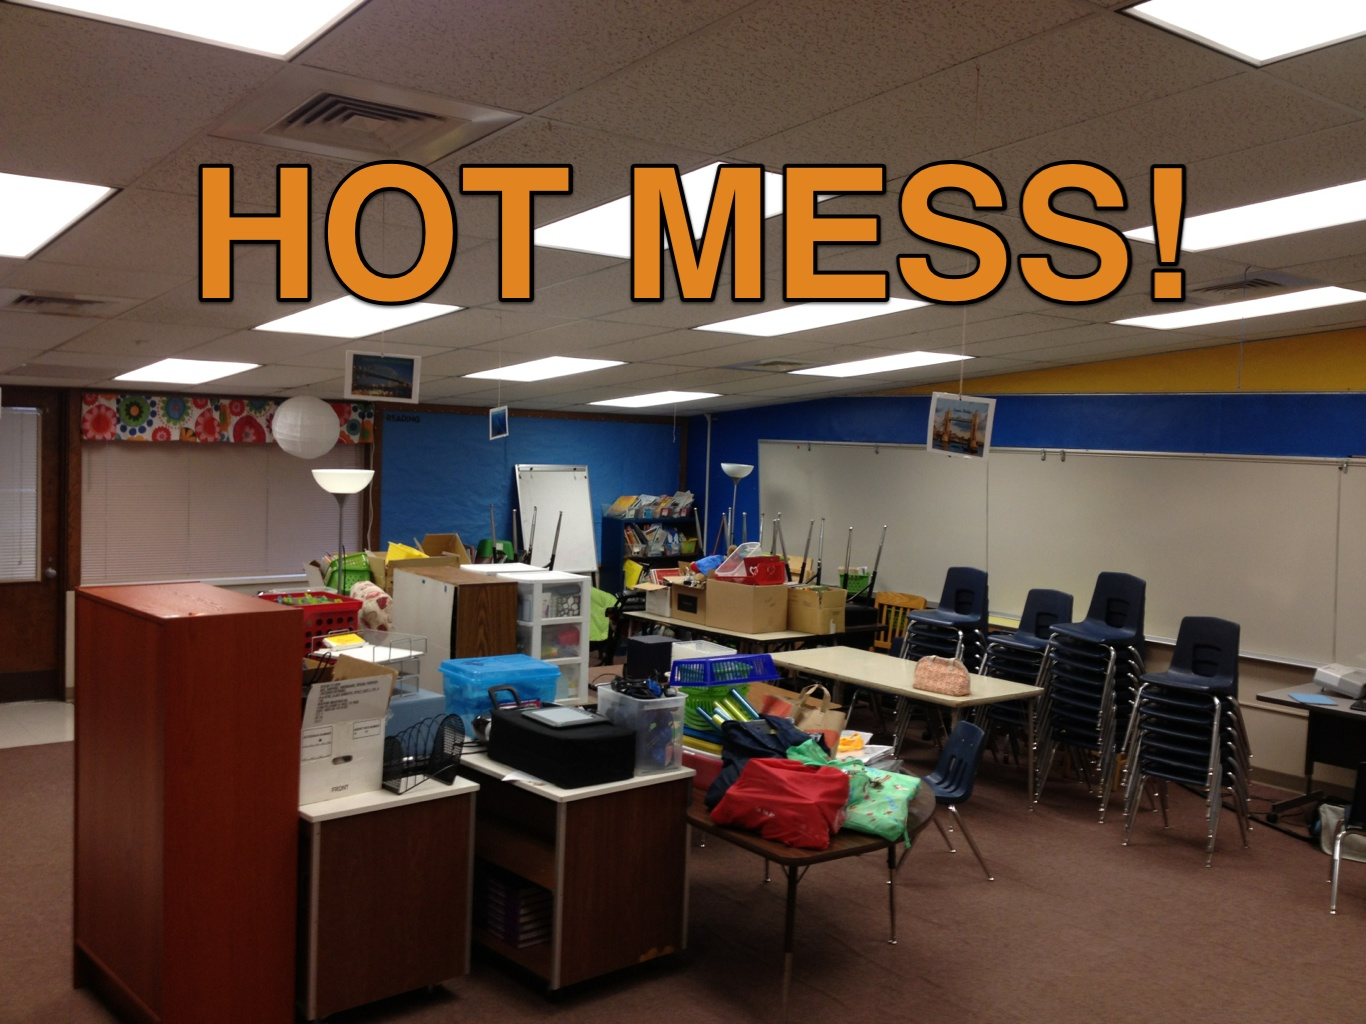 Classroom Quests August 2012